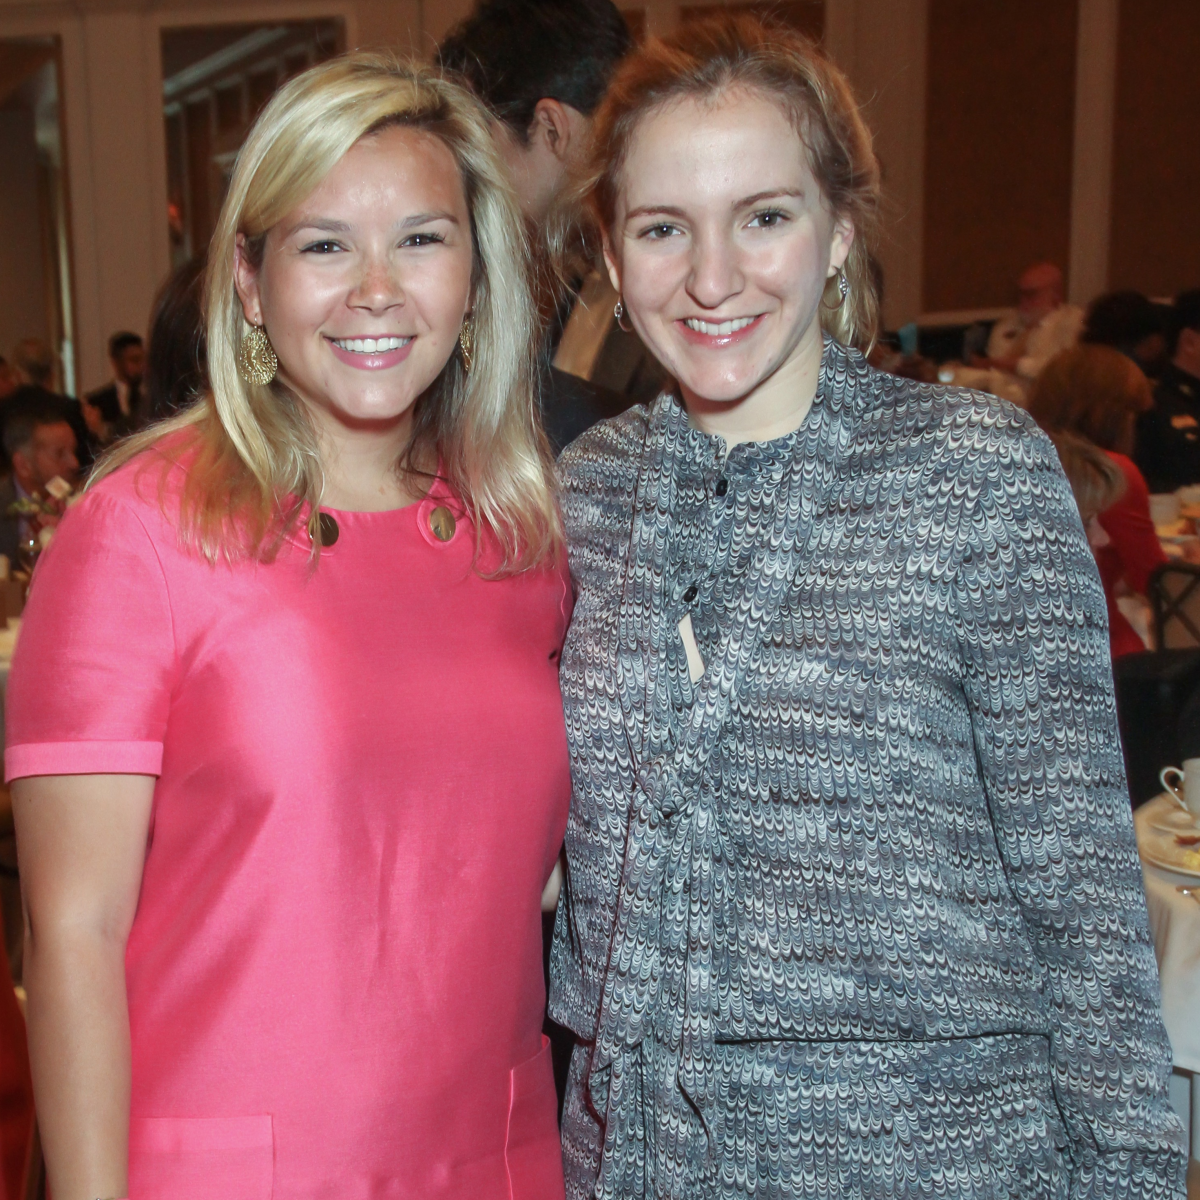 Mari Trevino and Kelly Krohn/Mayor's Breakfast